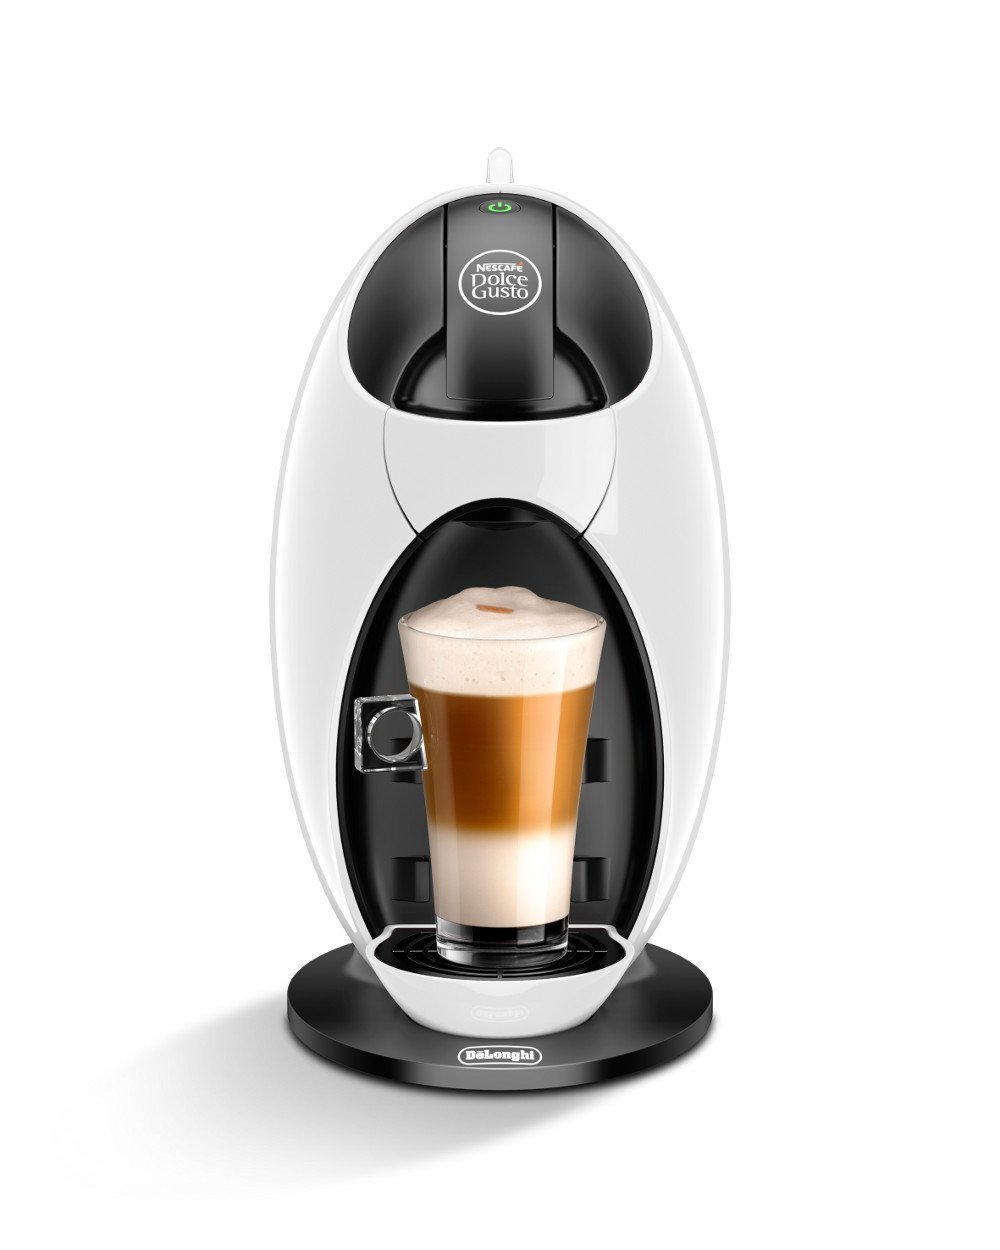 delonghi edg250 w nescafe dolce gusto jovia pod coffee machine white b 8004399328532 ebay. Black Bedroom Furniture Sets. Home Design Ideas